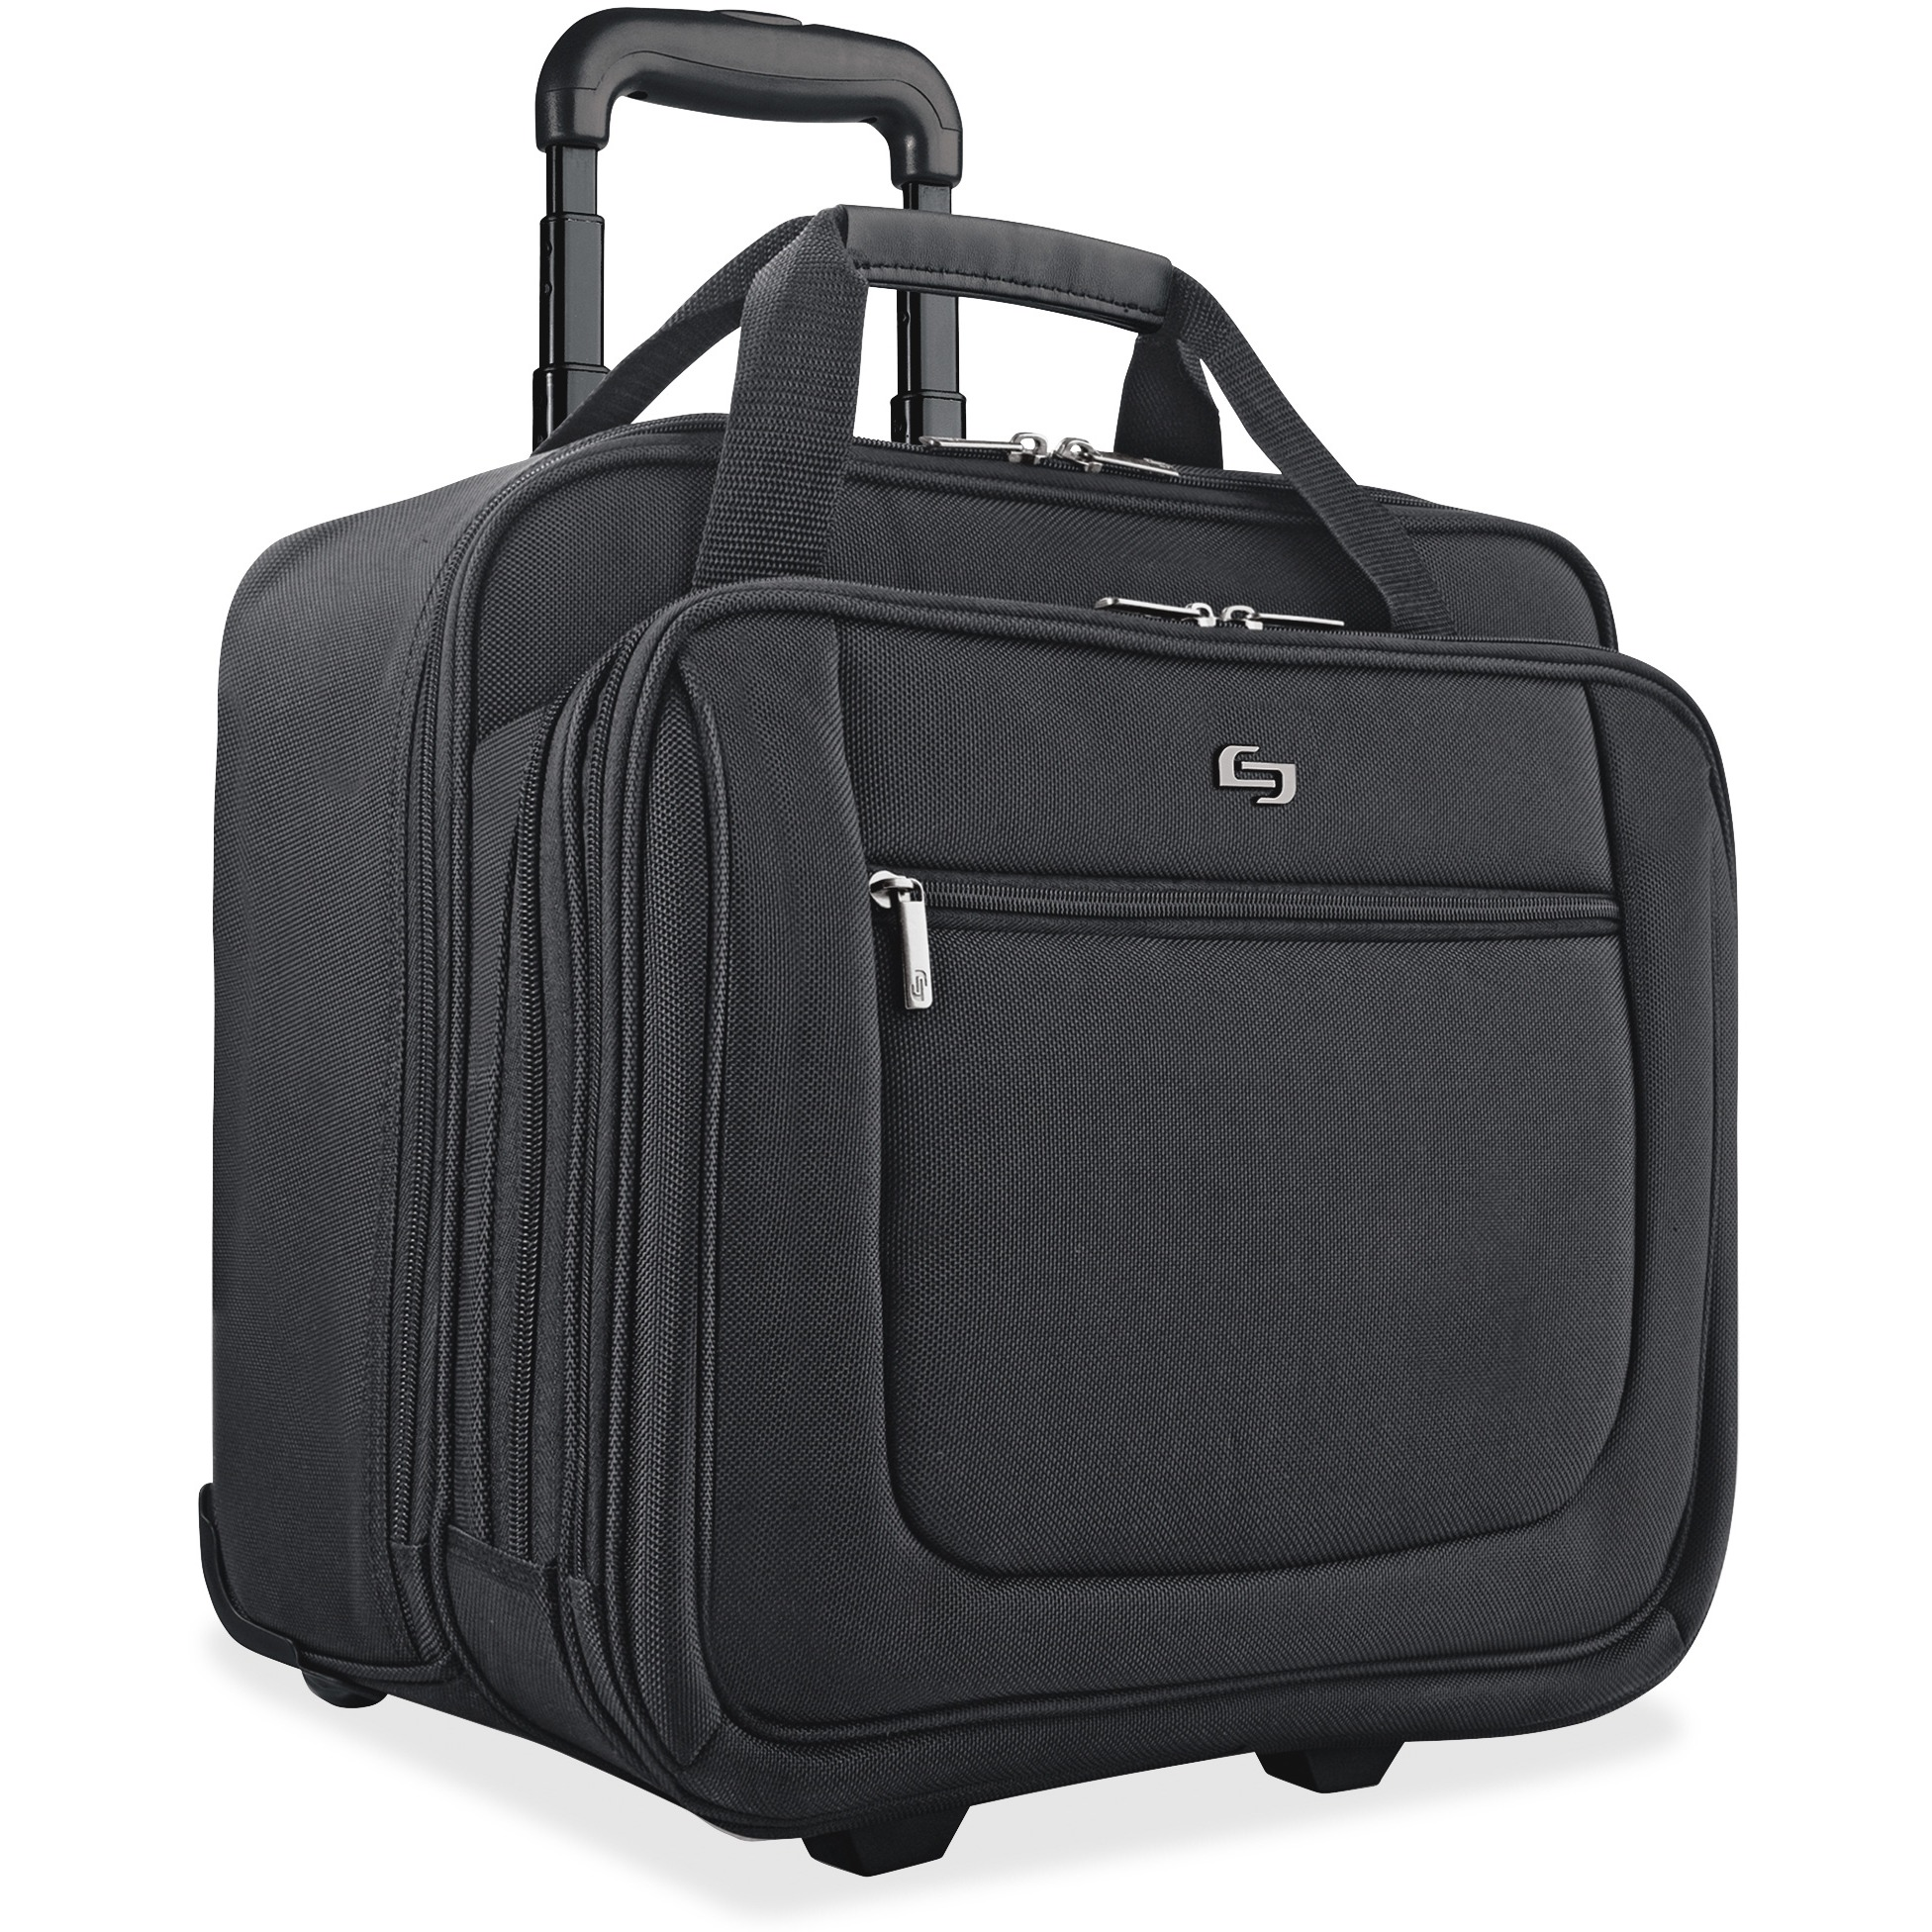 Solo, USLPT1364, US Luggage Classic Rolling Laptop Portfolio Case, 1, Black by Solo